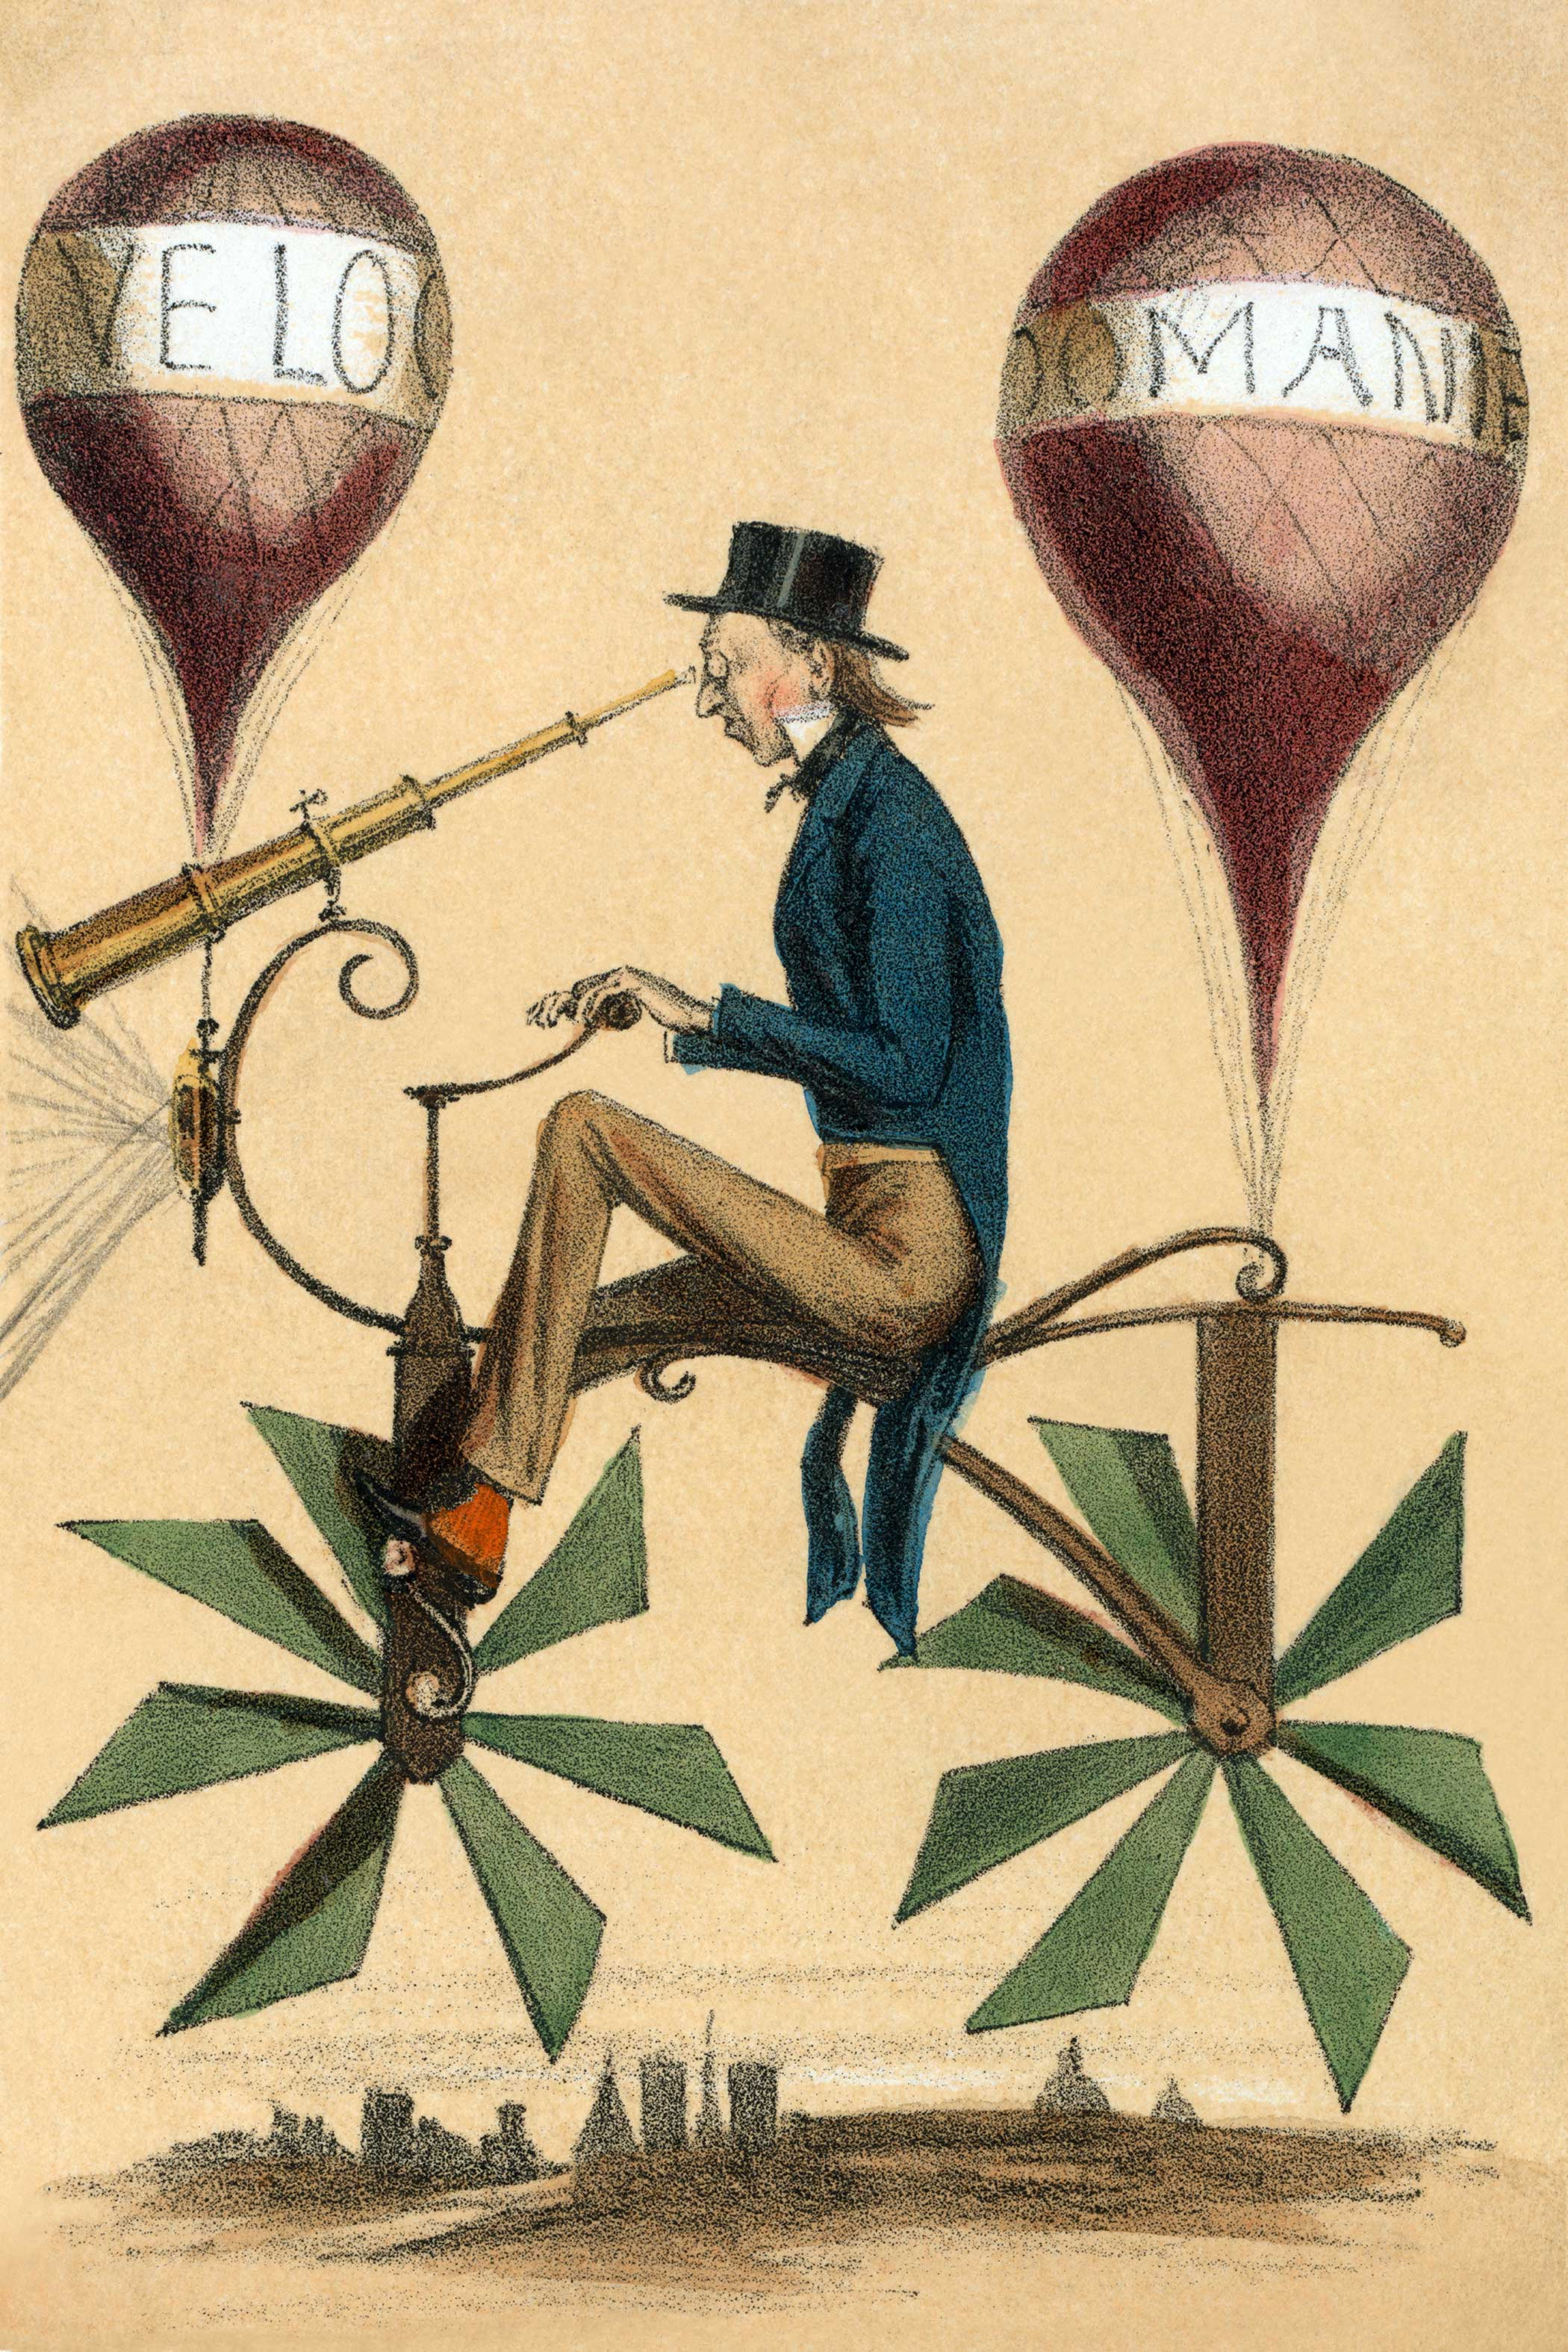 """French cartoon shows a man riding on a bicycle-like flying machine while looking through a telescope attached to the front circa 1867. Two balloons, """"Velocipedes"""" and """"Domanie,"""" are attached at front and rear as are propeller-like wheels."""